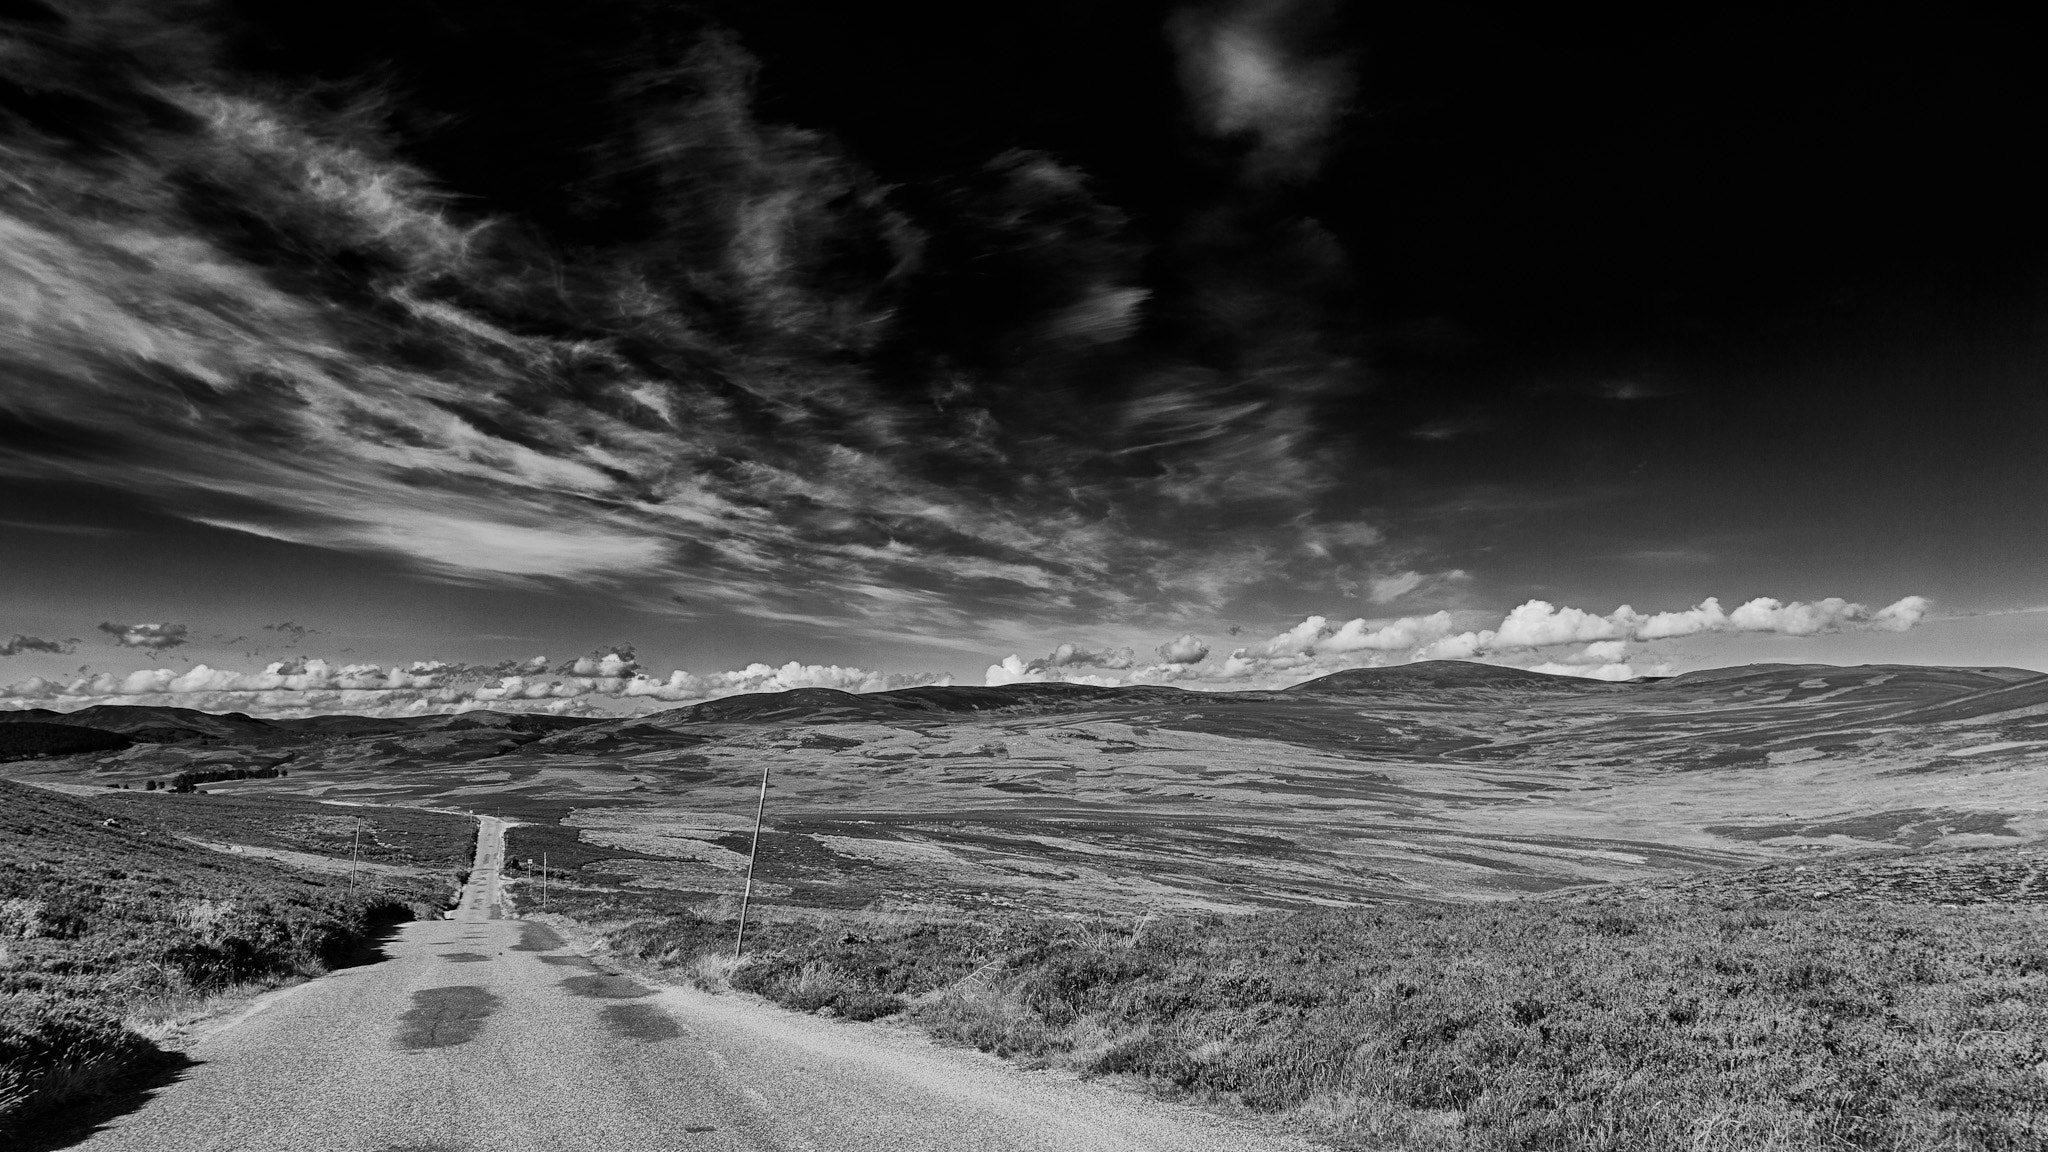 Photograph A Road to Nowhere by Ingo Meckmann on 500px